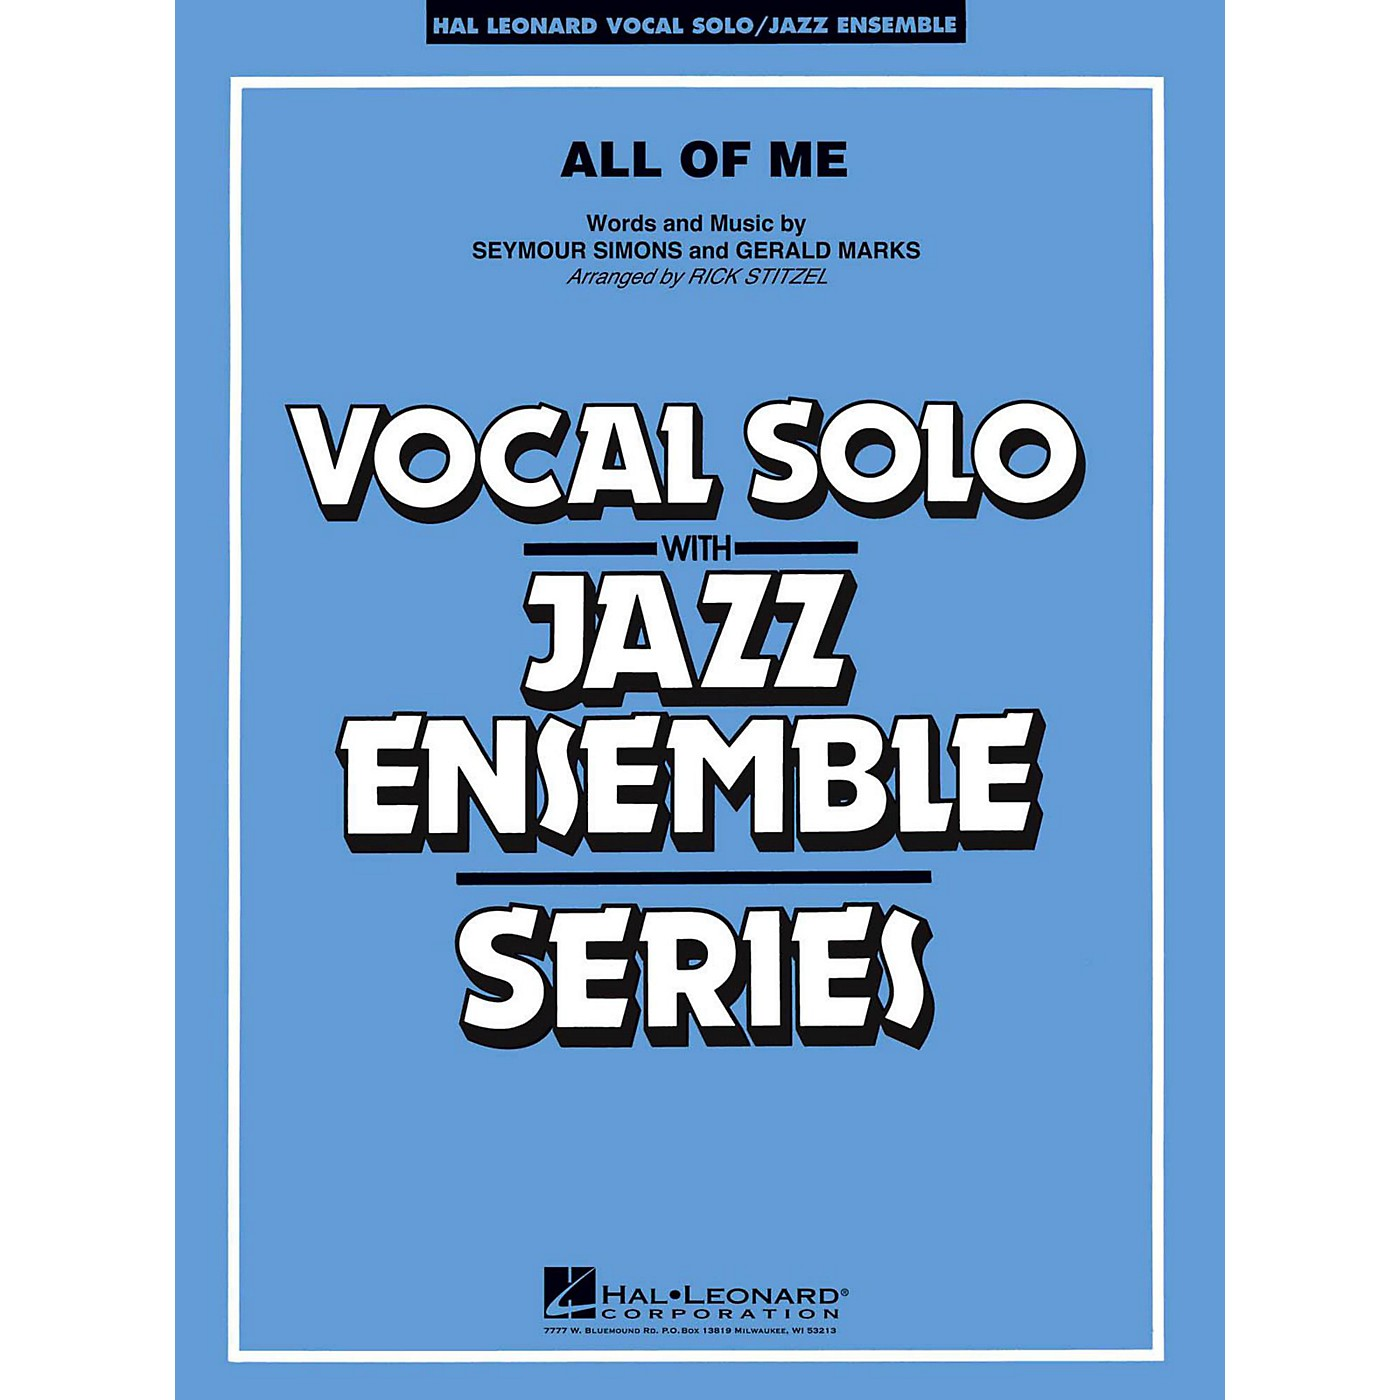 Hal Leonard All Of Me Vocal Solo Jazz Band Level 3 - 4 thumbnail